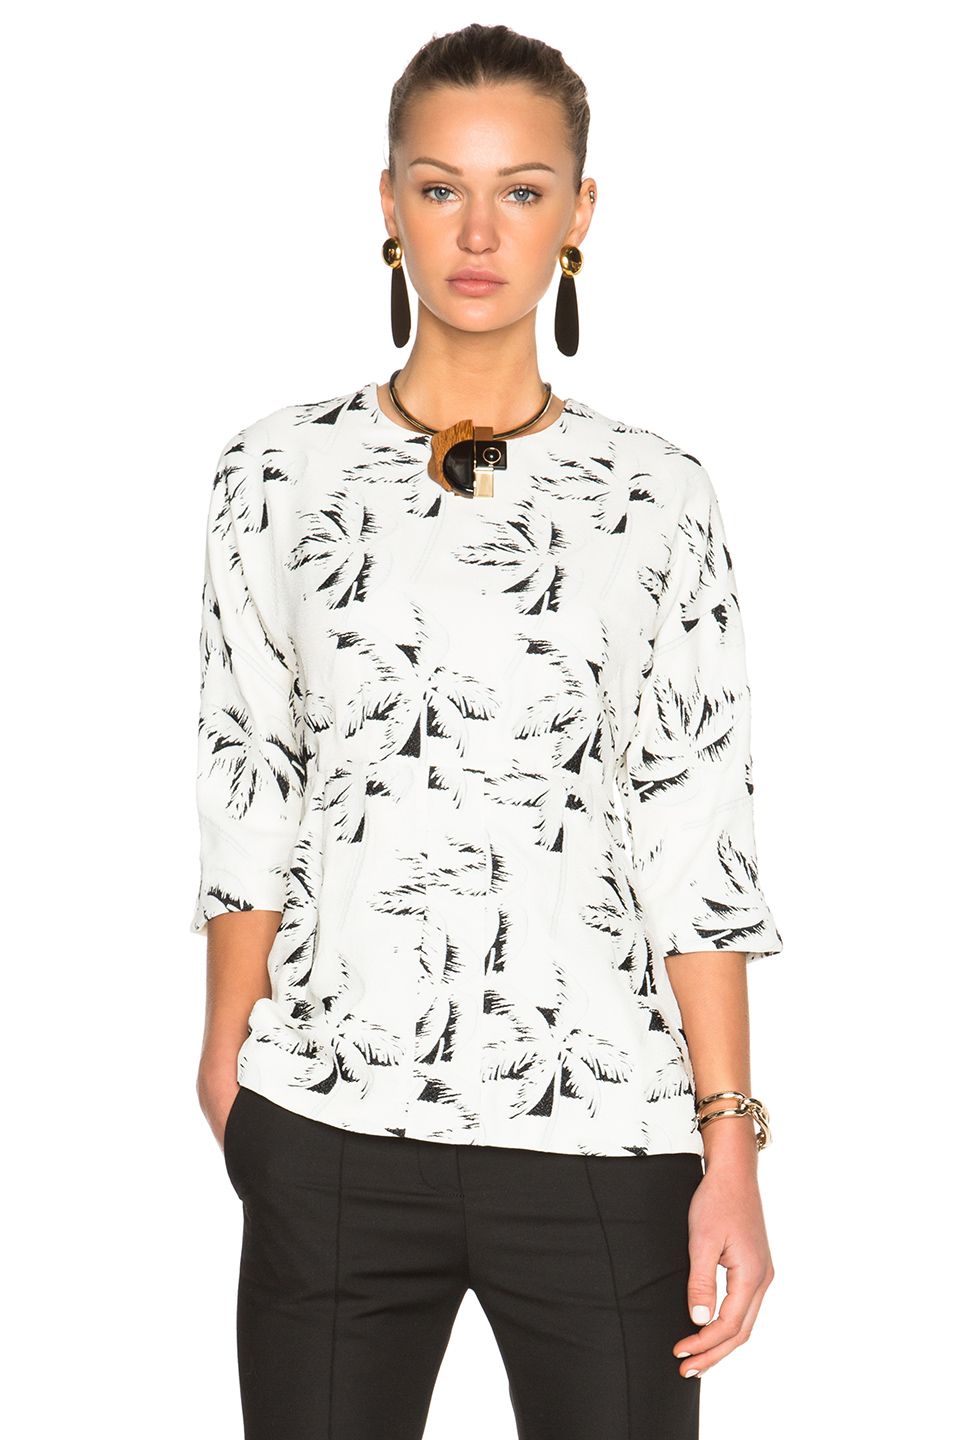 Marni Crepe Jacquard Top in White,Abstract